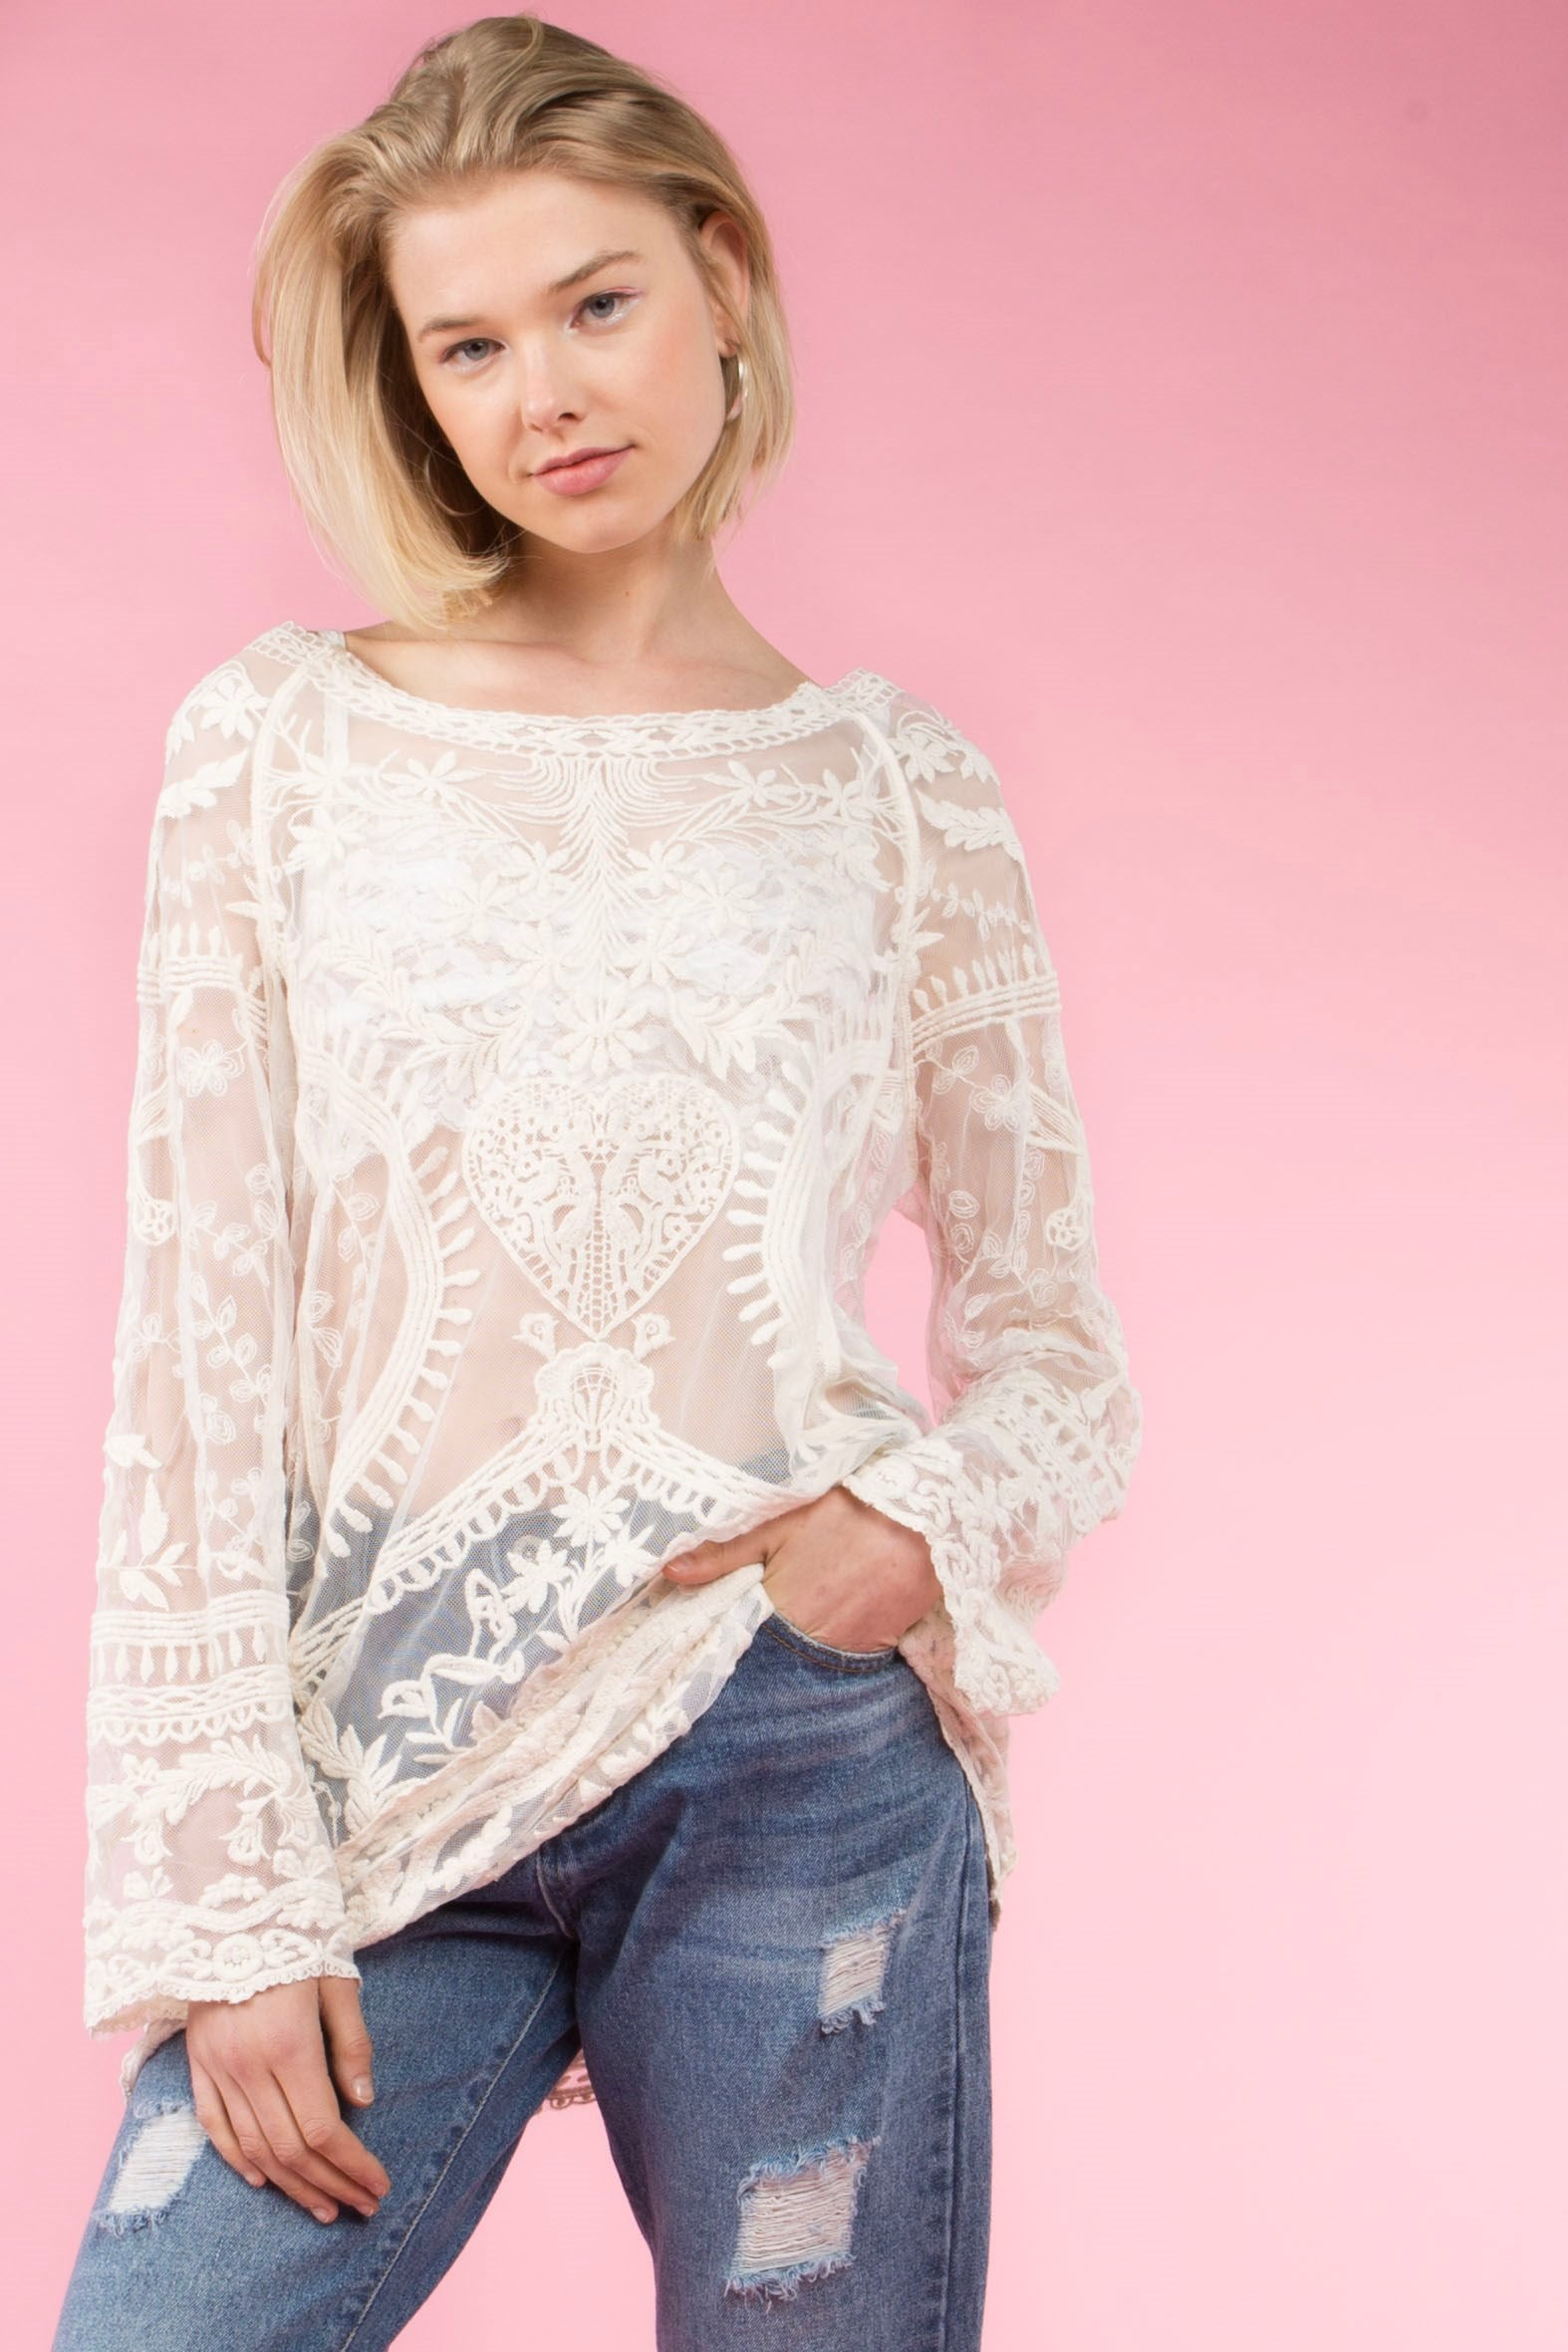 Front view young woman wearing natural colored lace tunic top with wide boat neckline